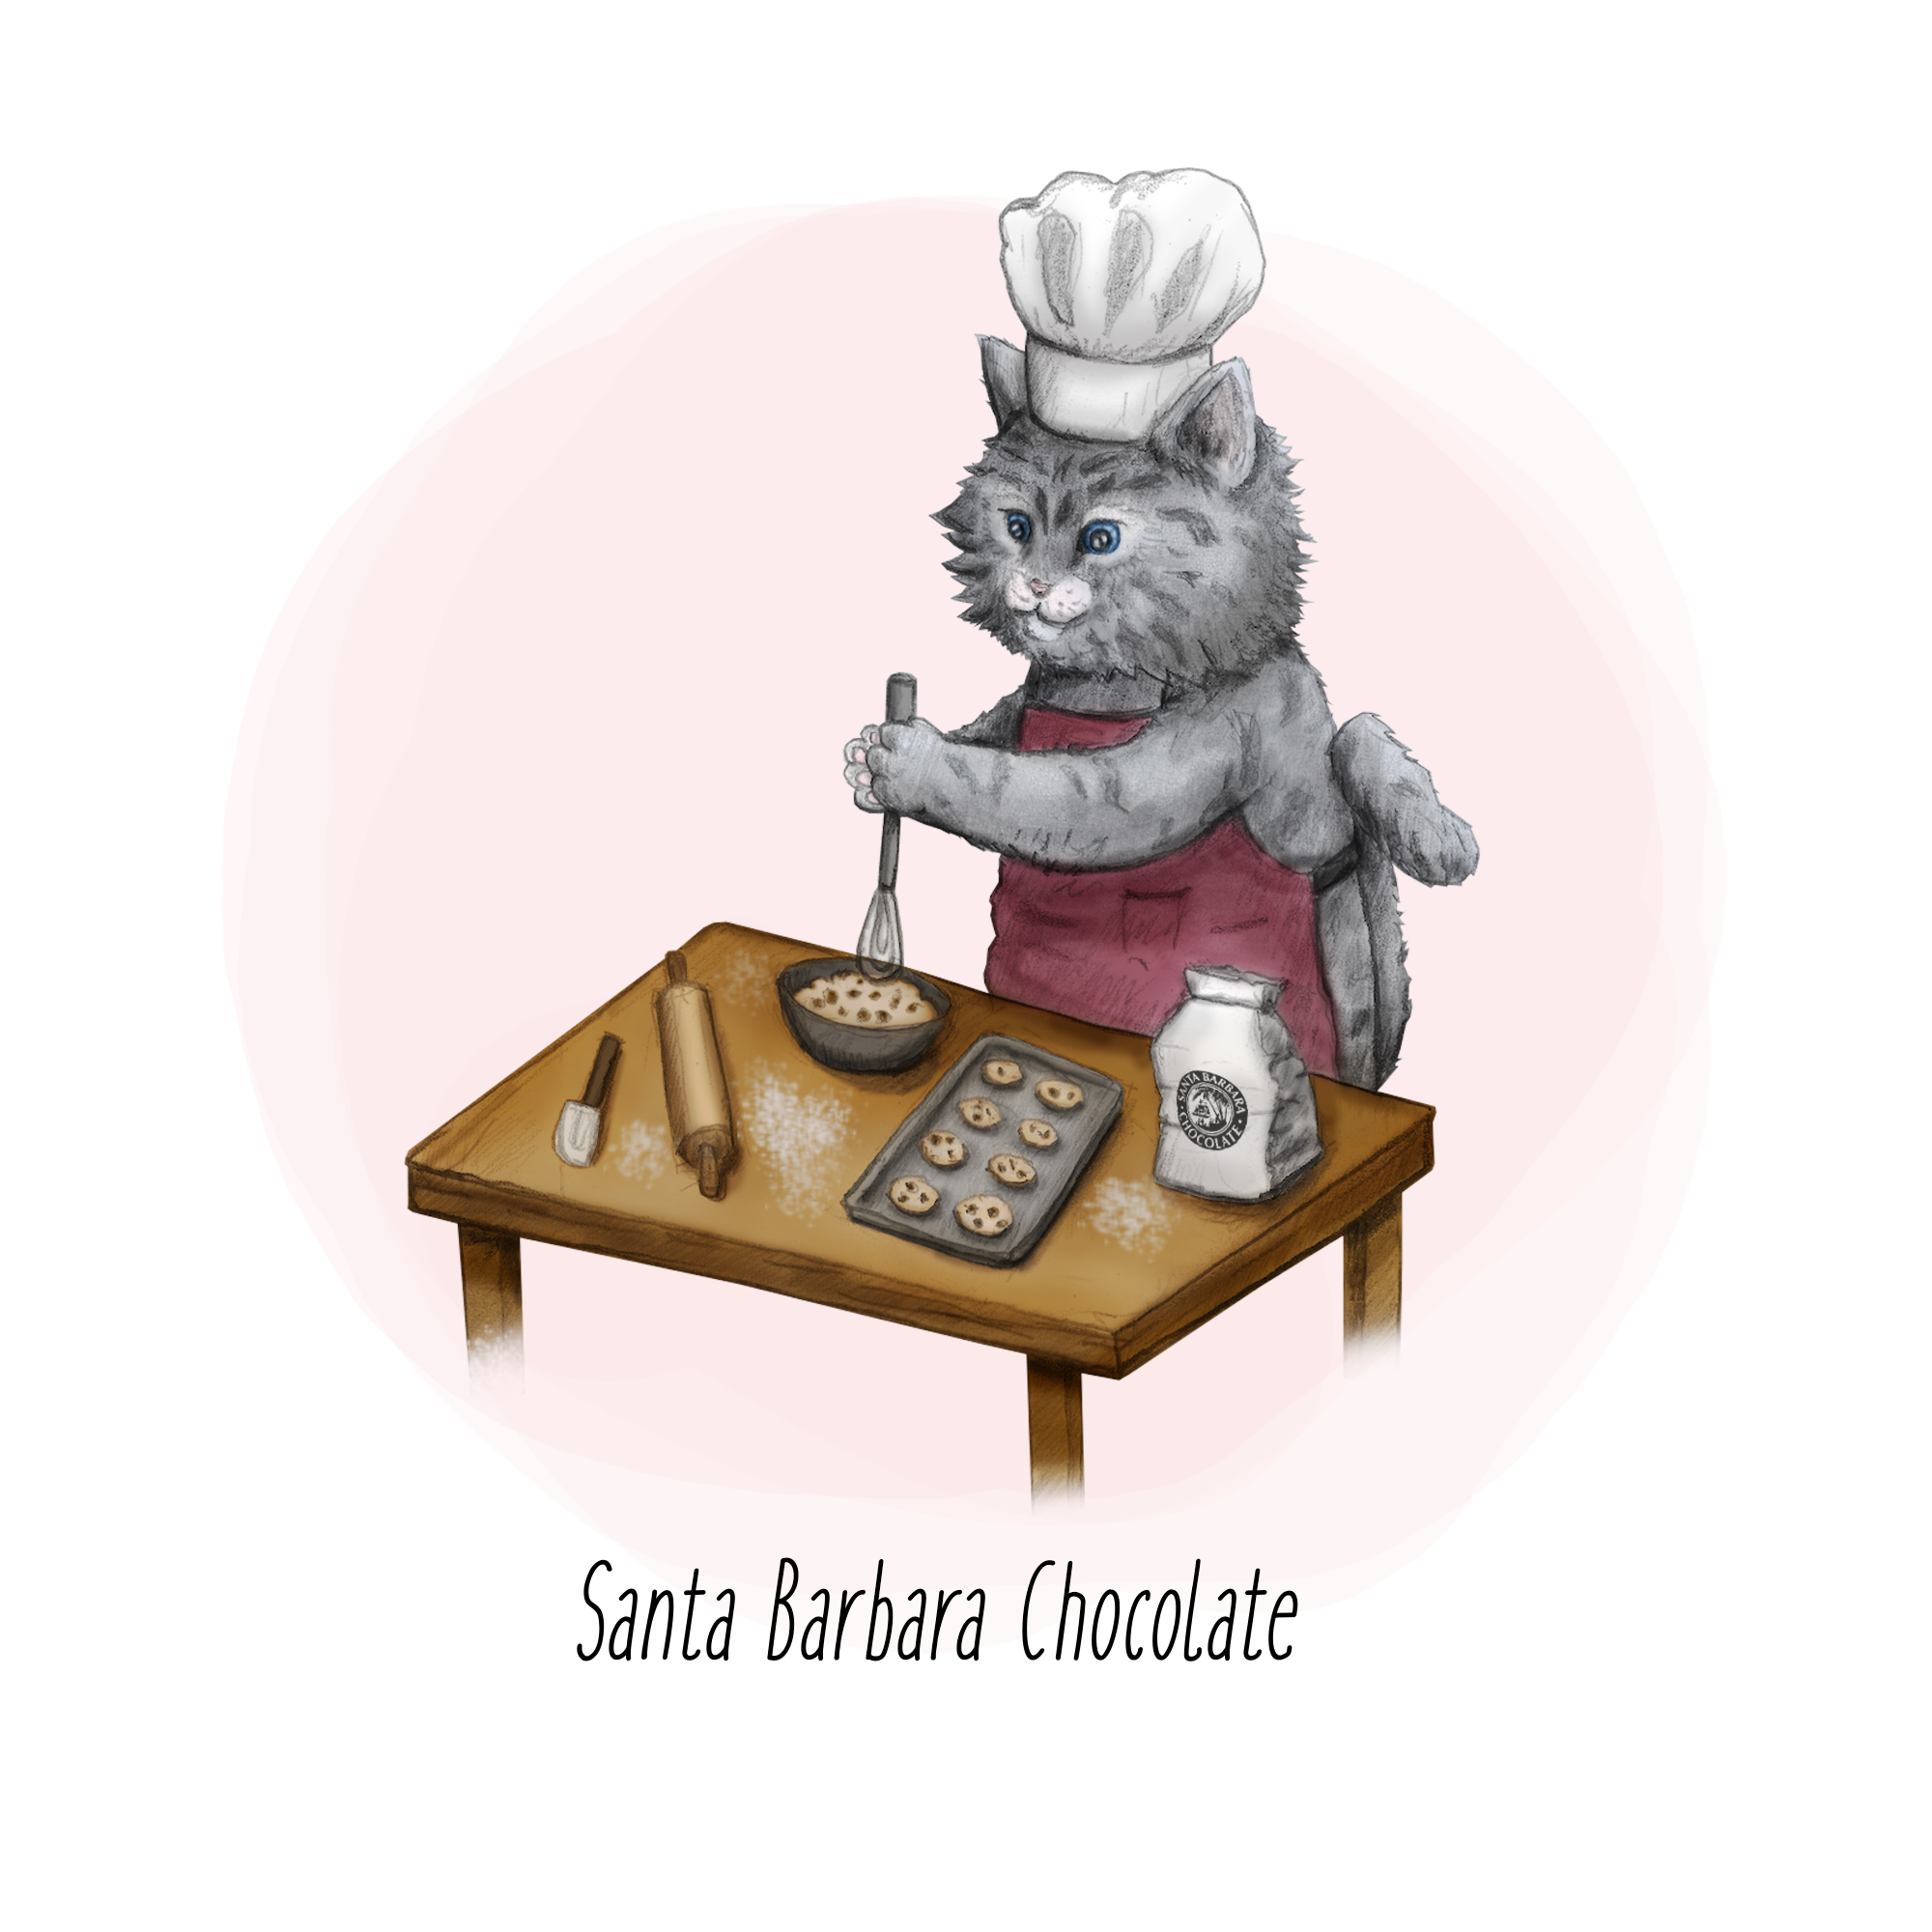 chef-kitty-uses-professional-chocolate-organic.png